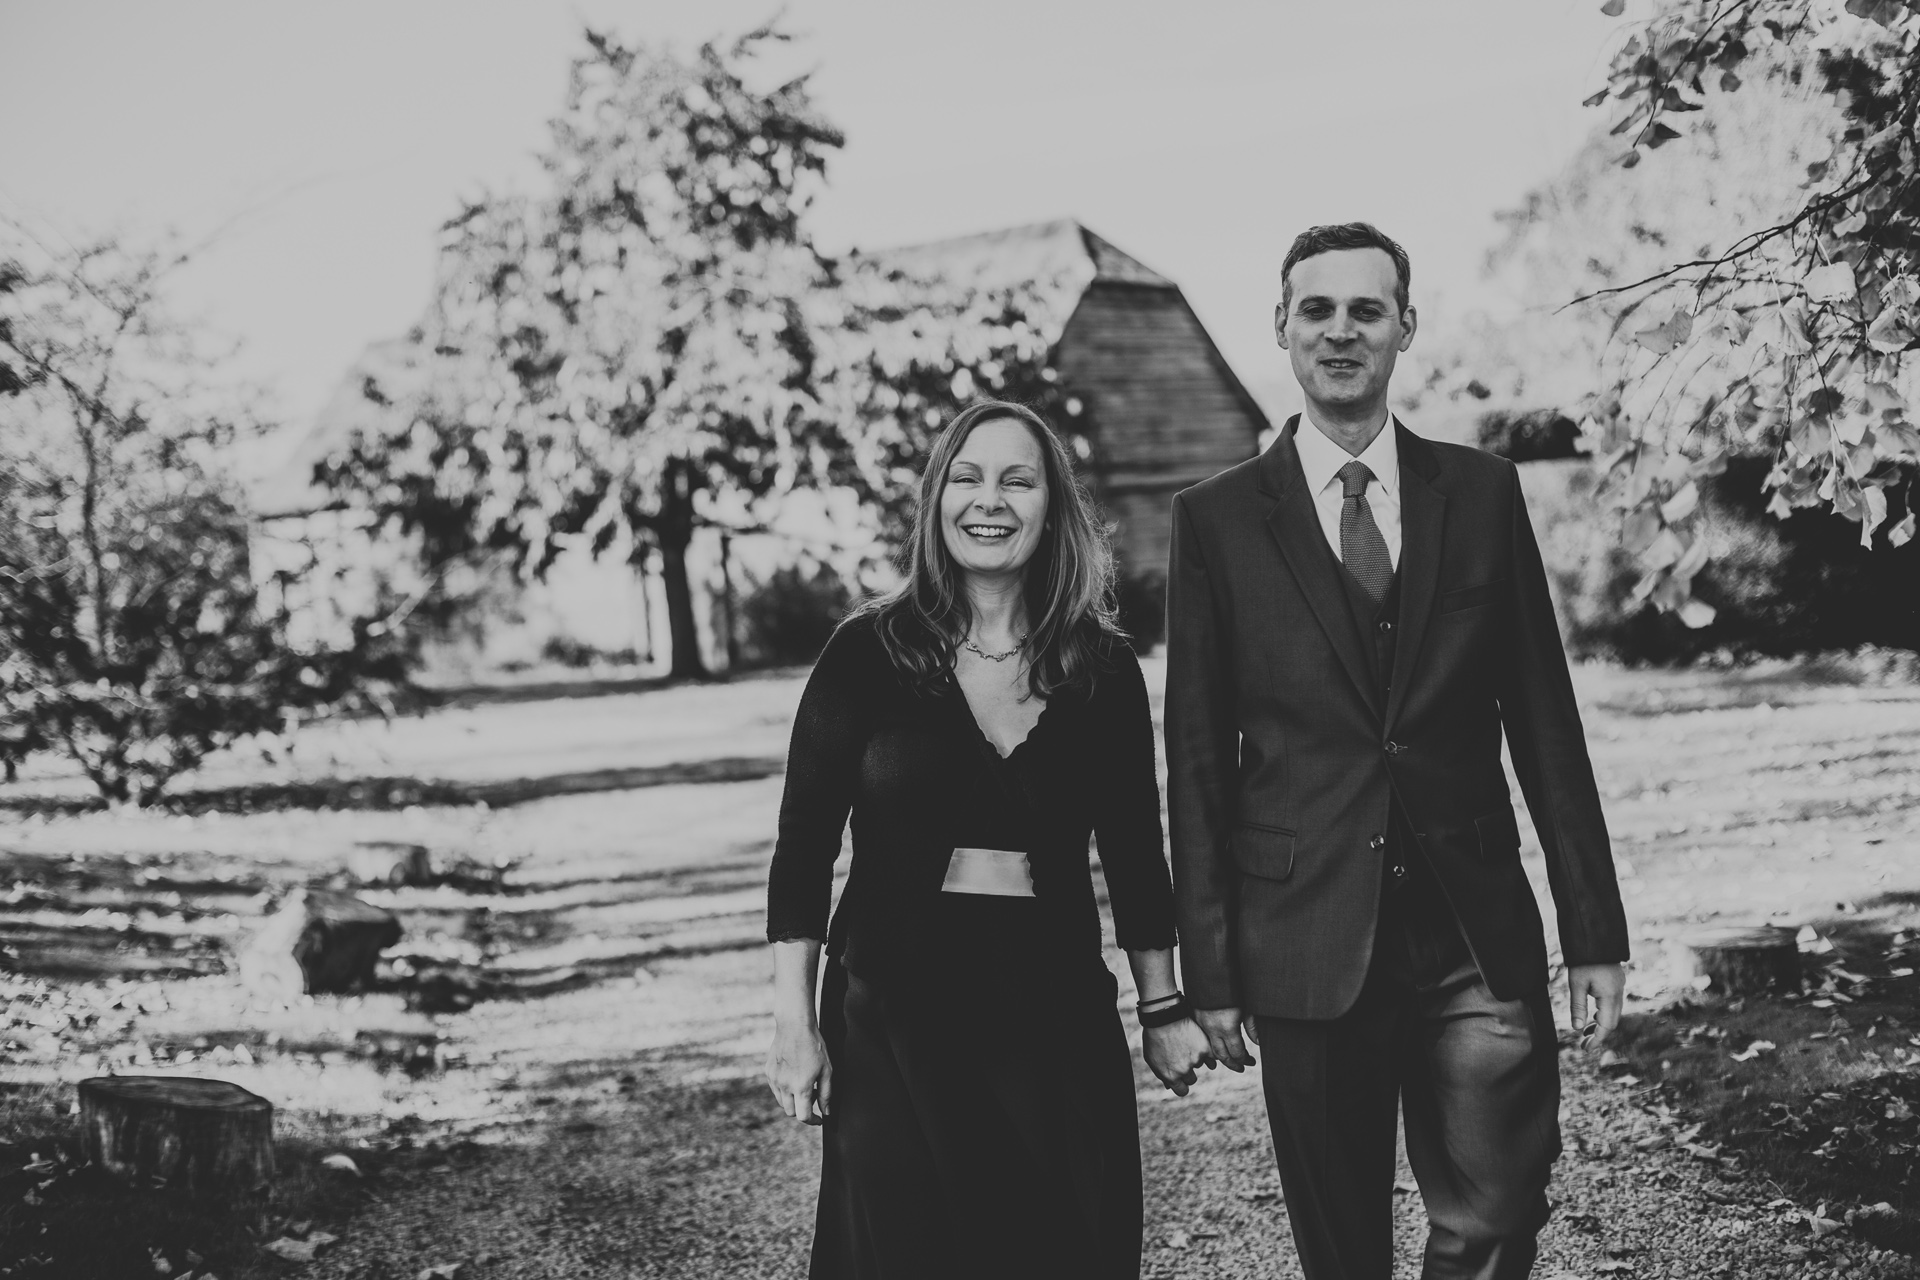 Wedding guests walking hand in hand. Photograph in black and white.